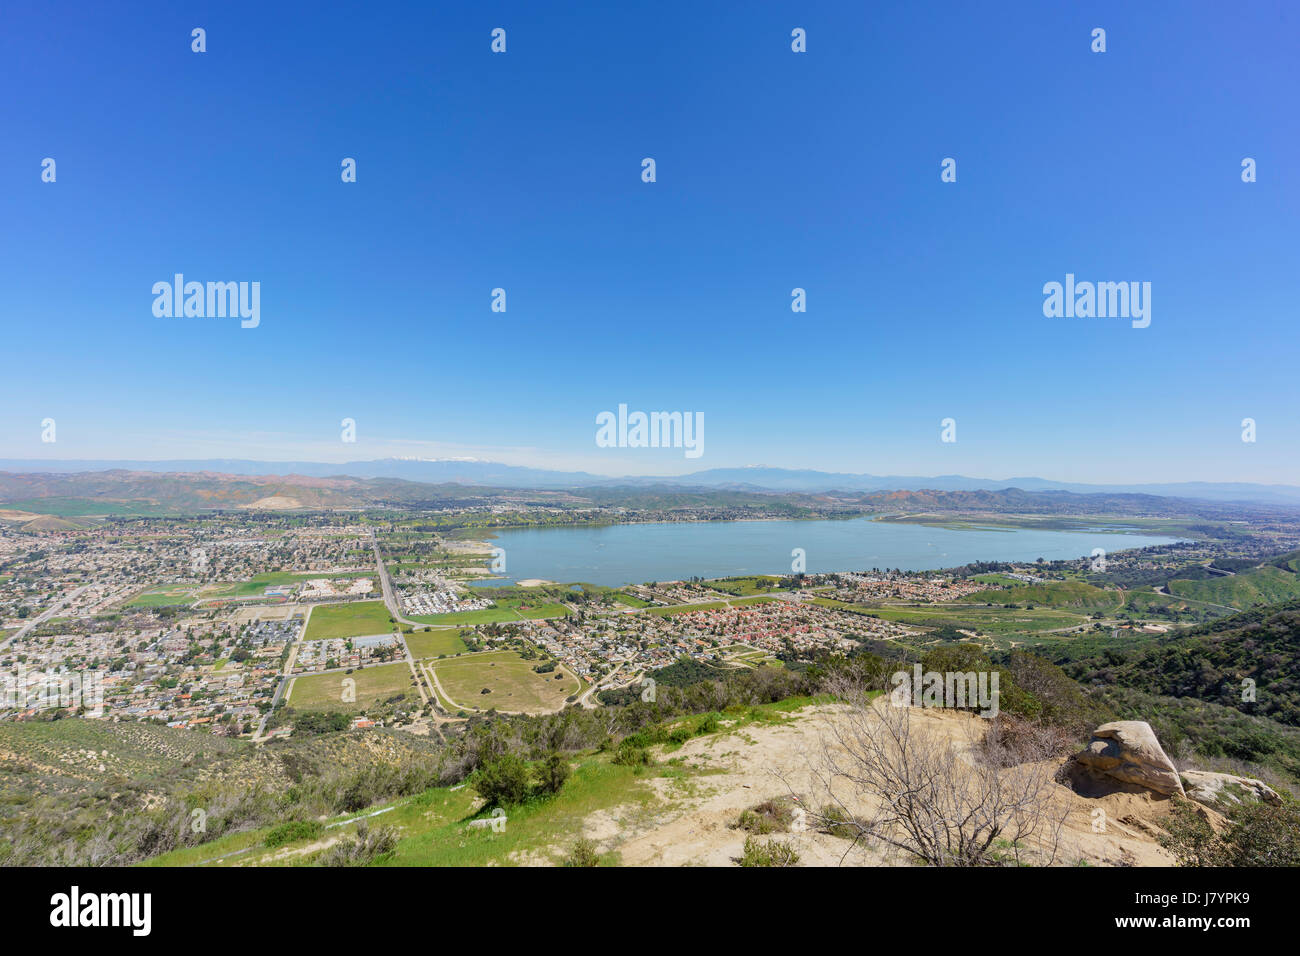 Aerial view of Lake Elsinore and the cityscape, California - Stock Image